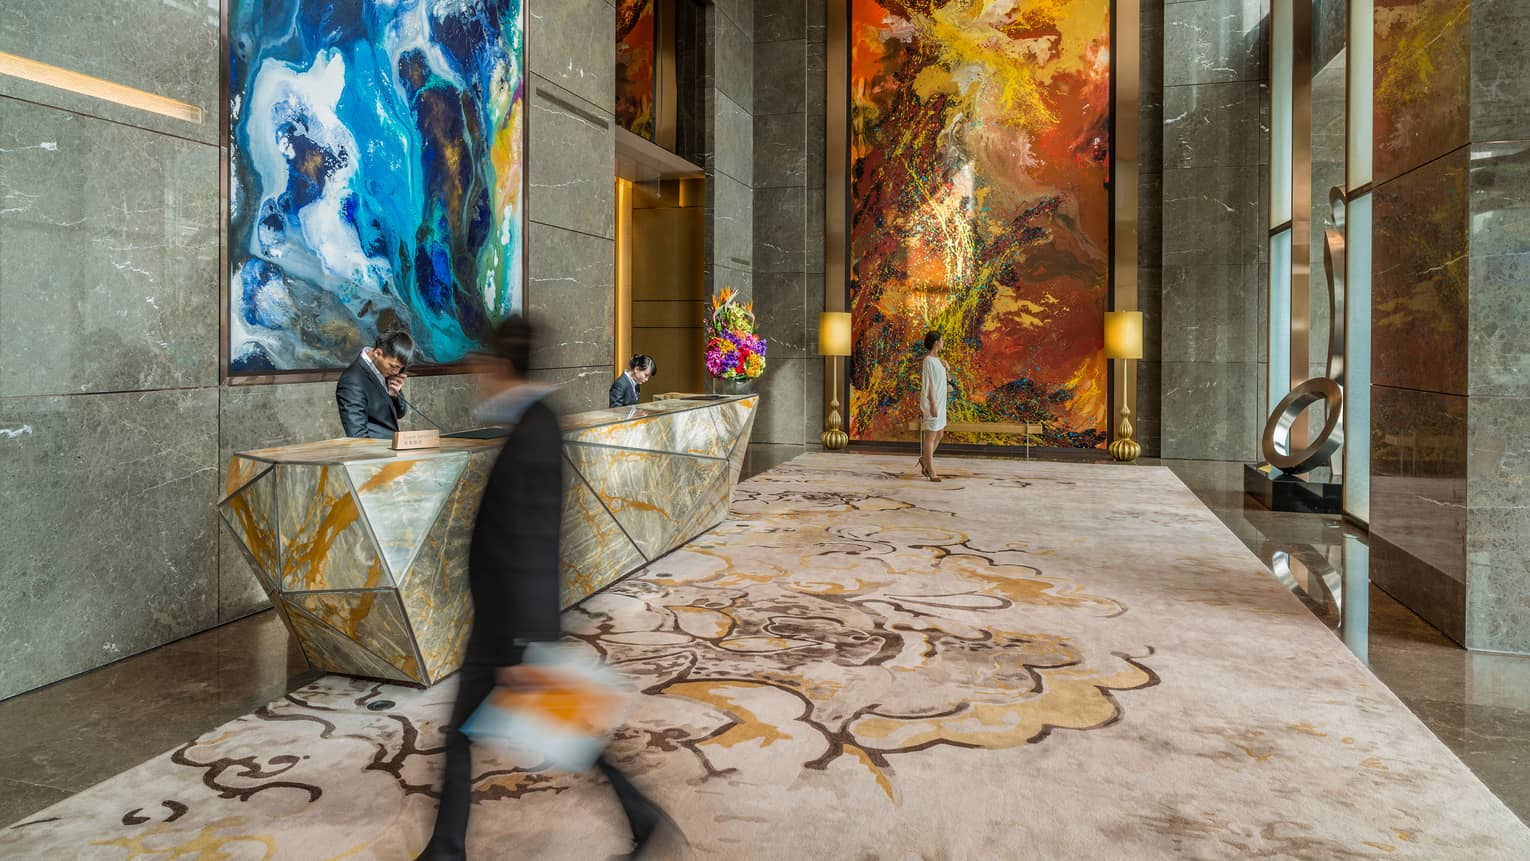 Man wearing suits walks through hotel lobby surrounded by marble, large modern art